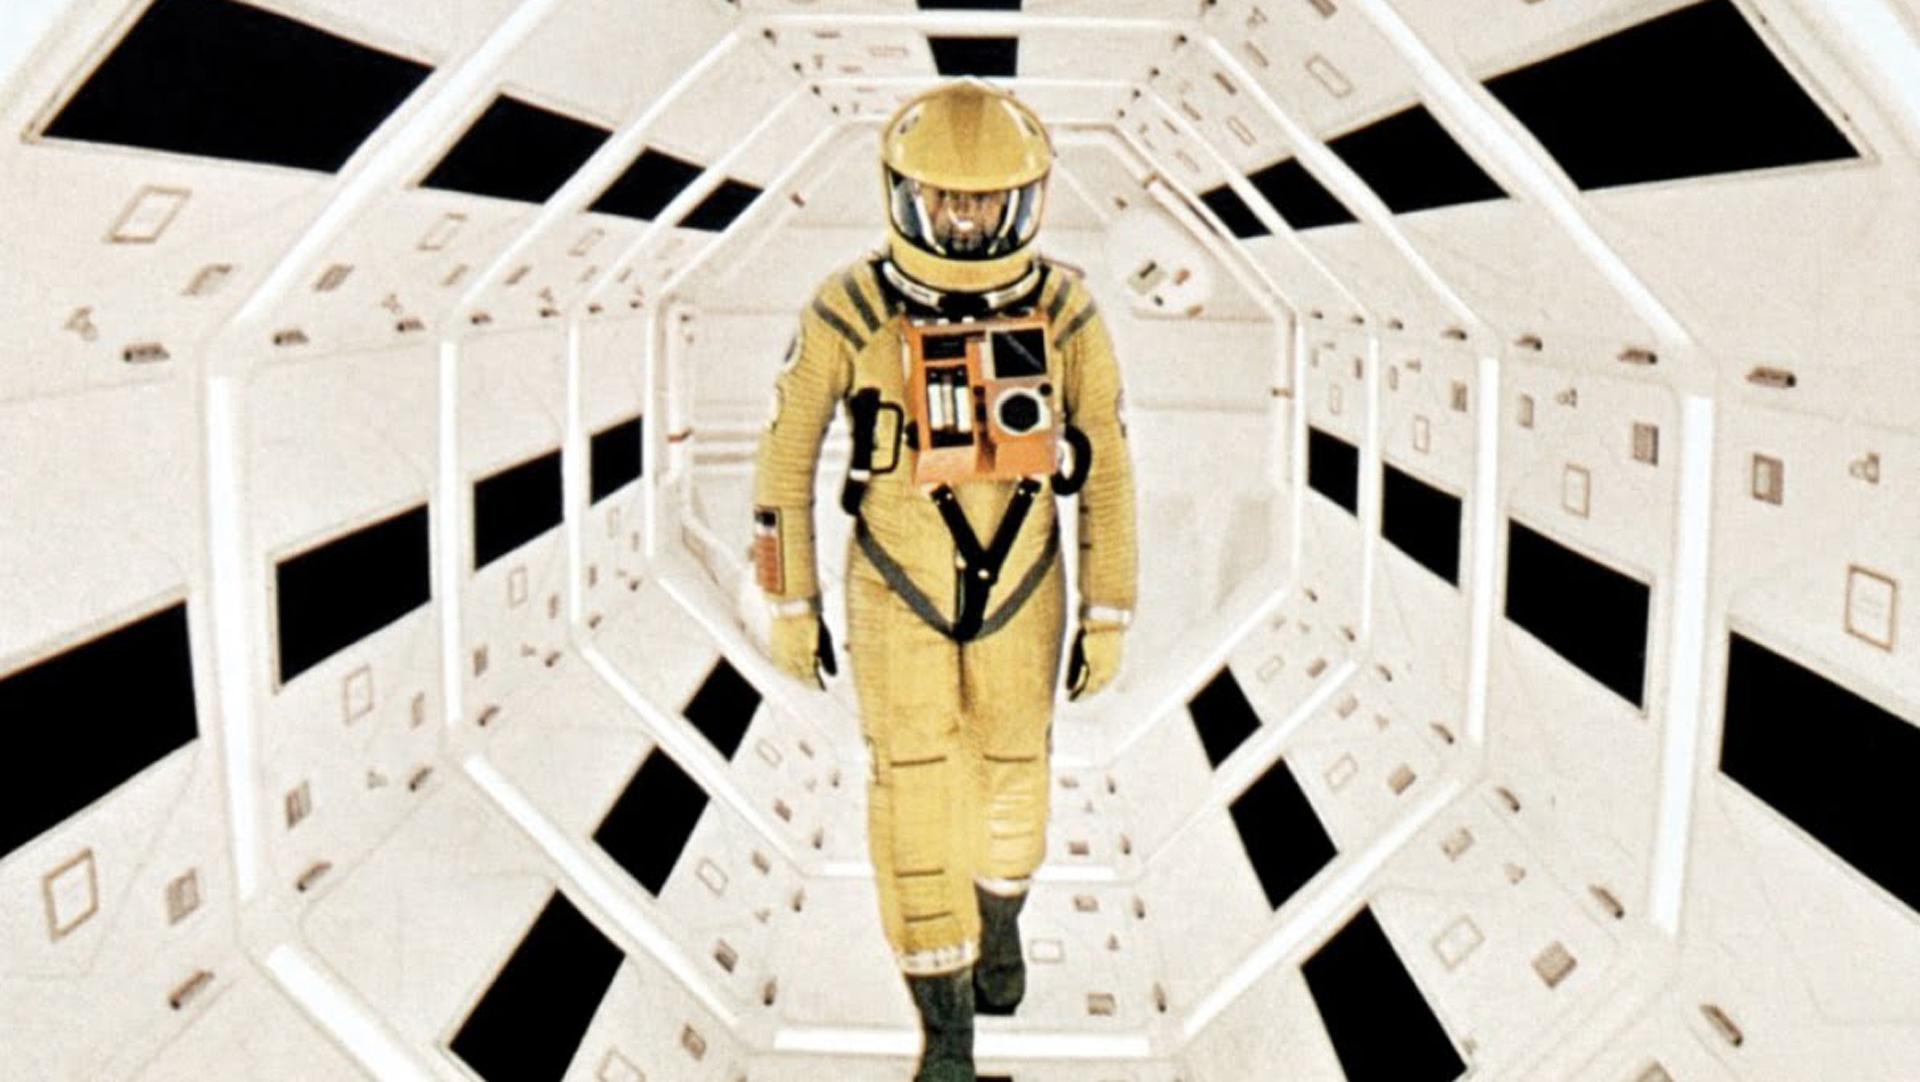 still from 2001: a space odyssey. my favorite film.